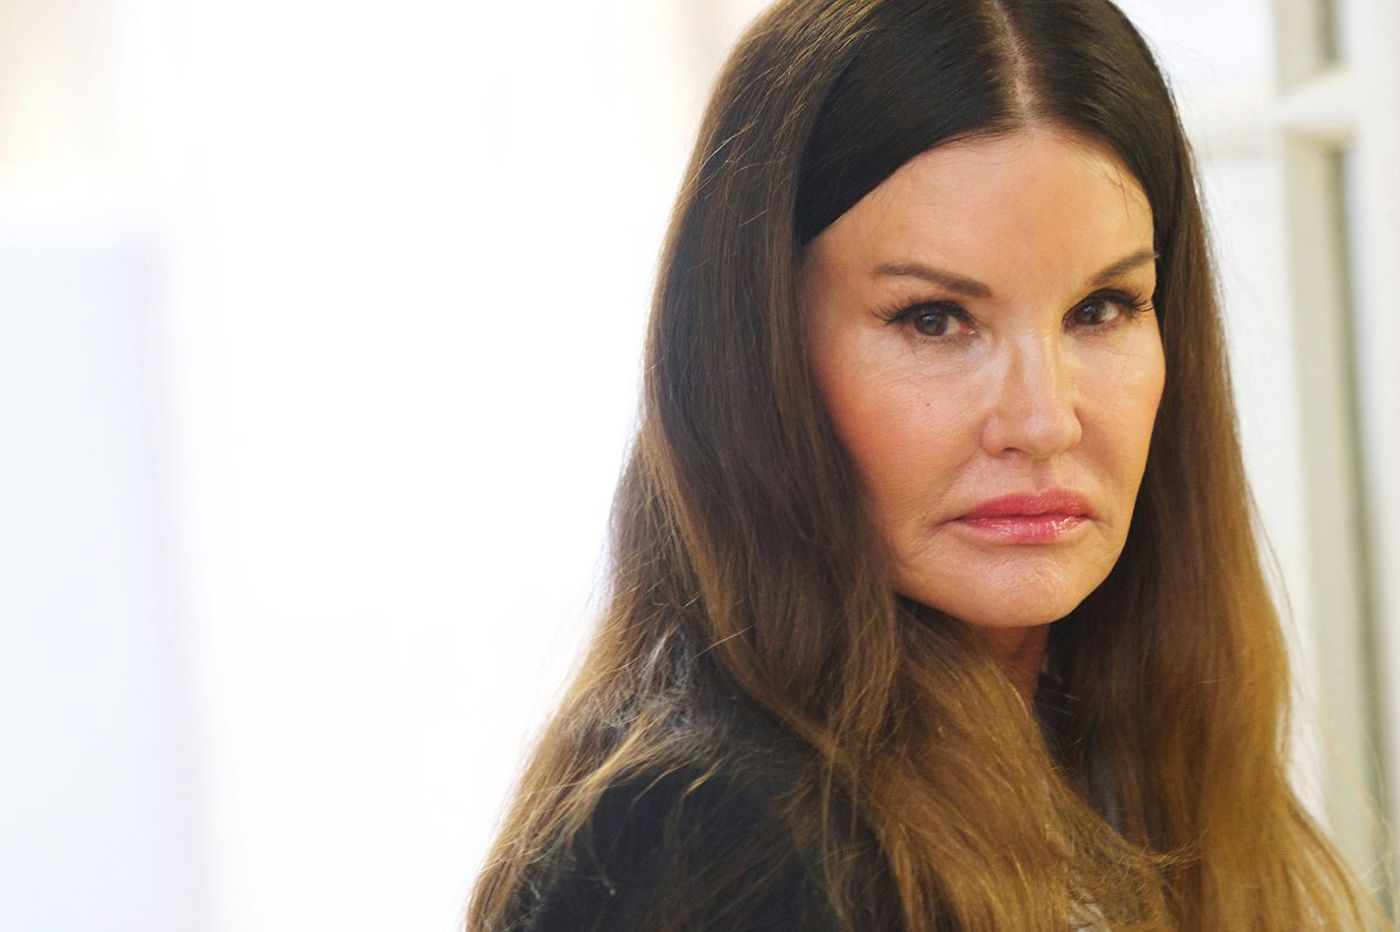 Model Janice Dickinson, Bill Cosby's most famous accuser, takes witness stand at trial